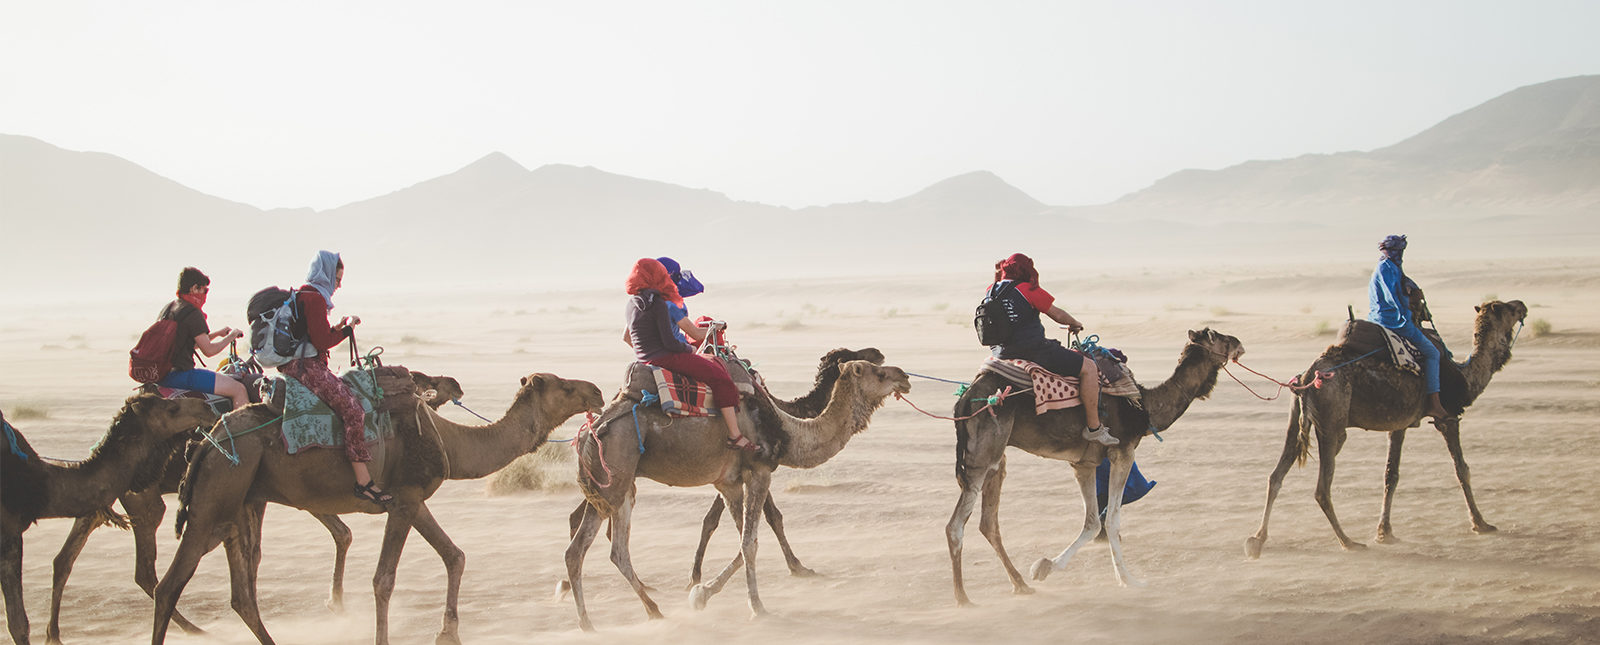 Three camels carrying people through the desert